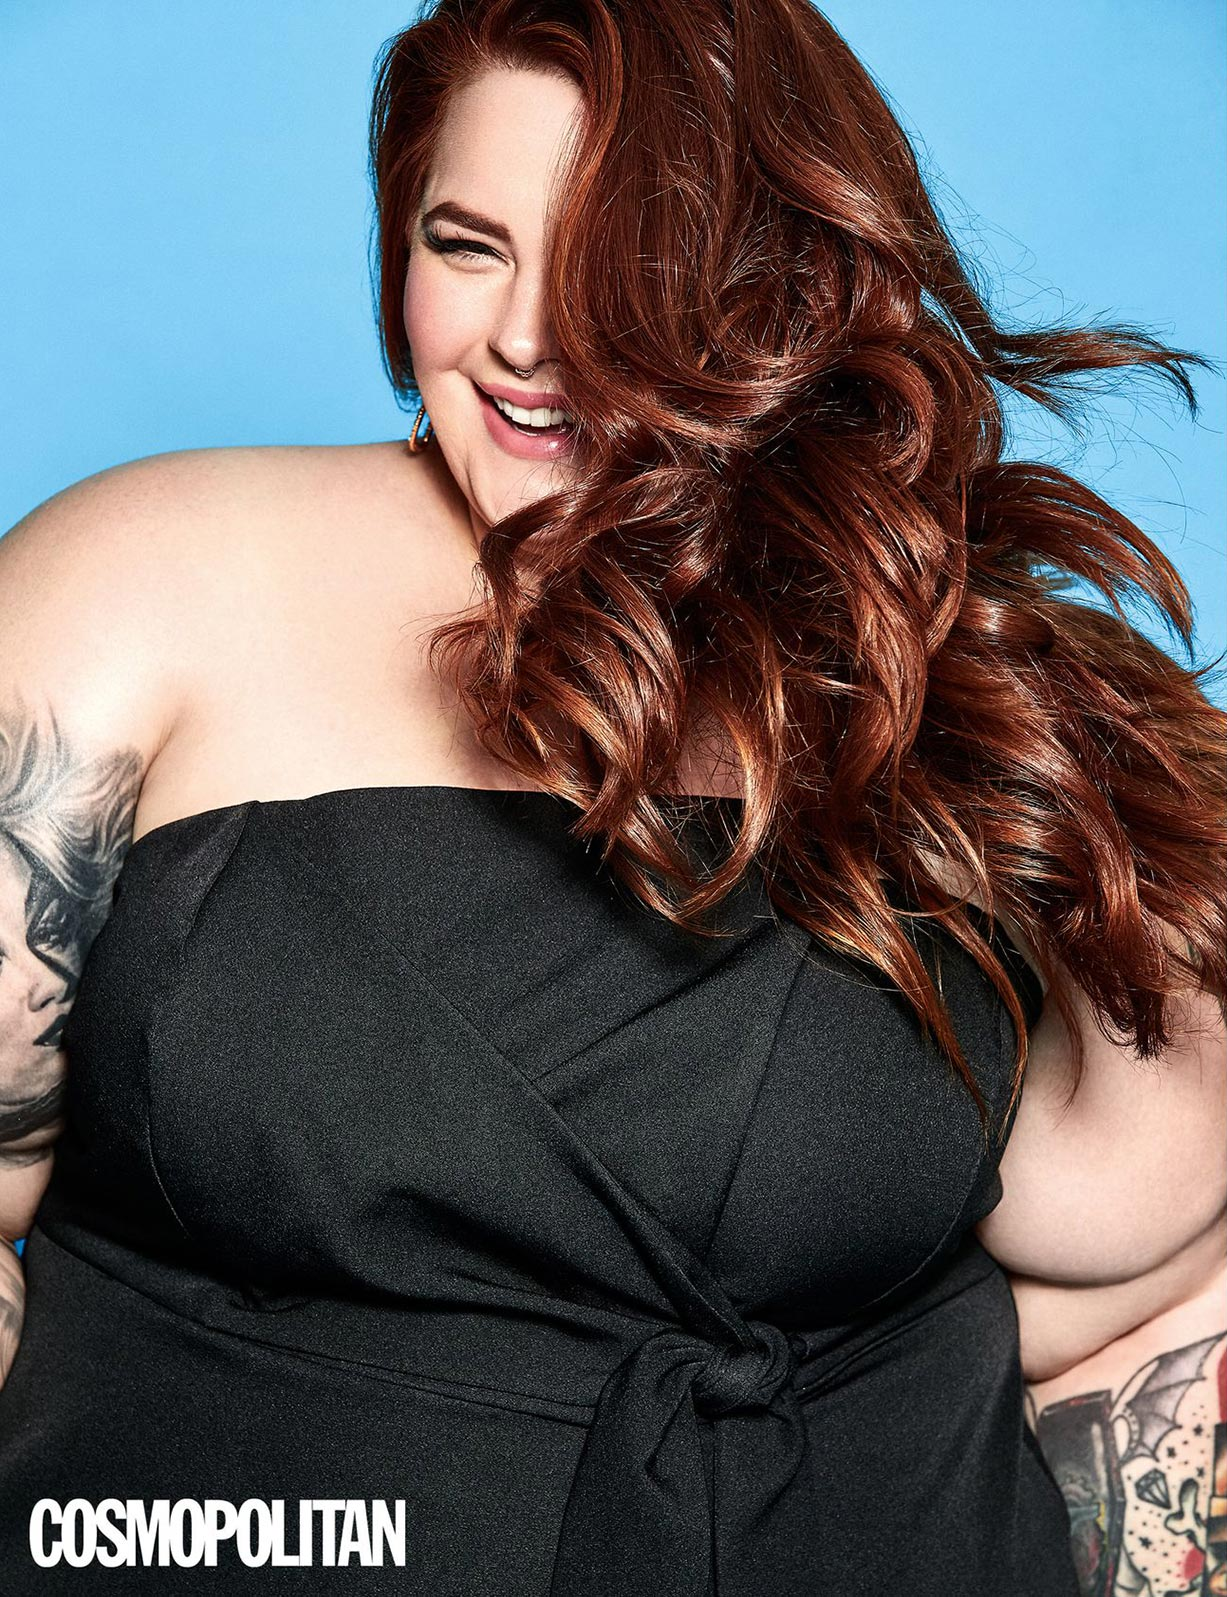 plus-plus-model Tess Holliday - Cosmopolitan UK october 2018